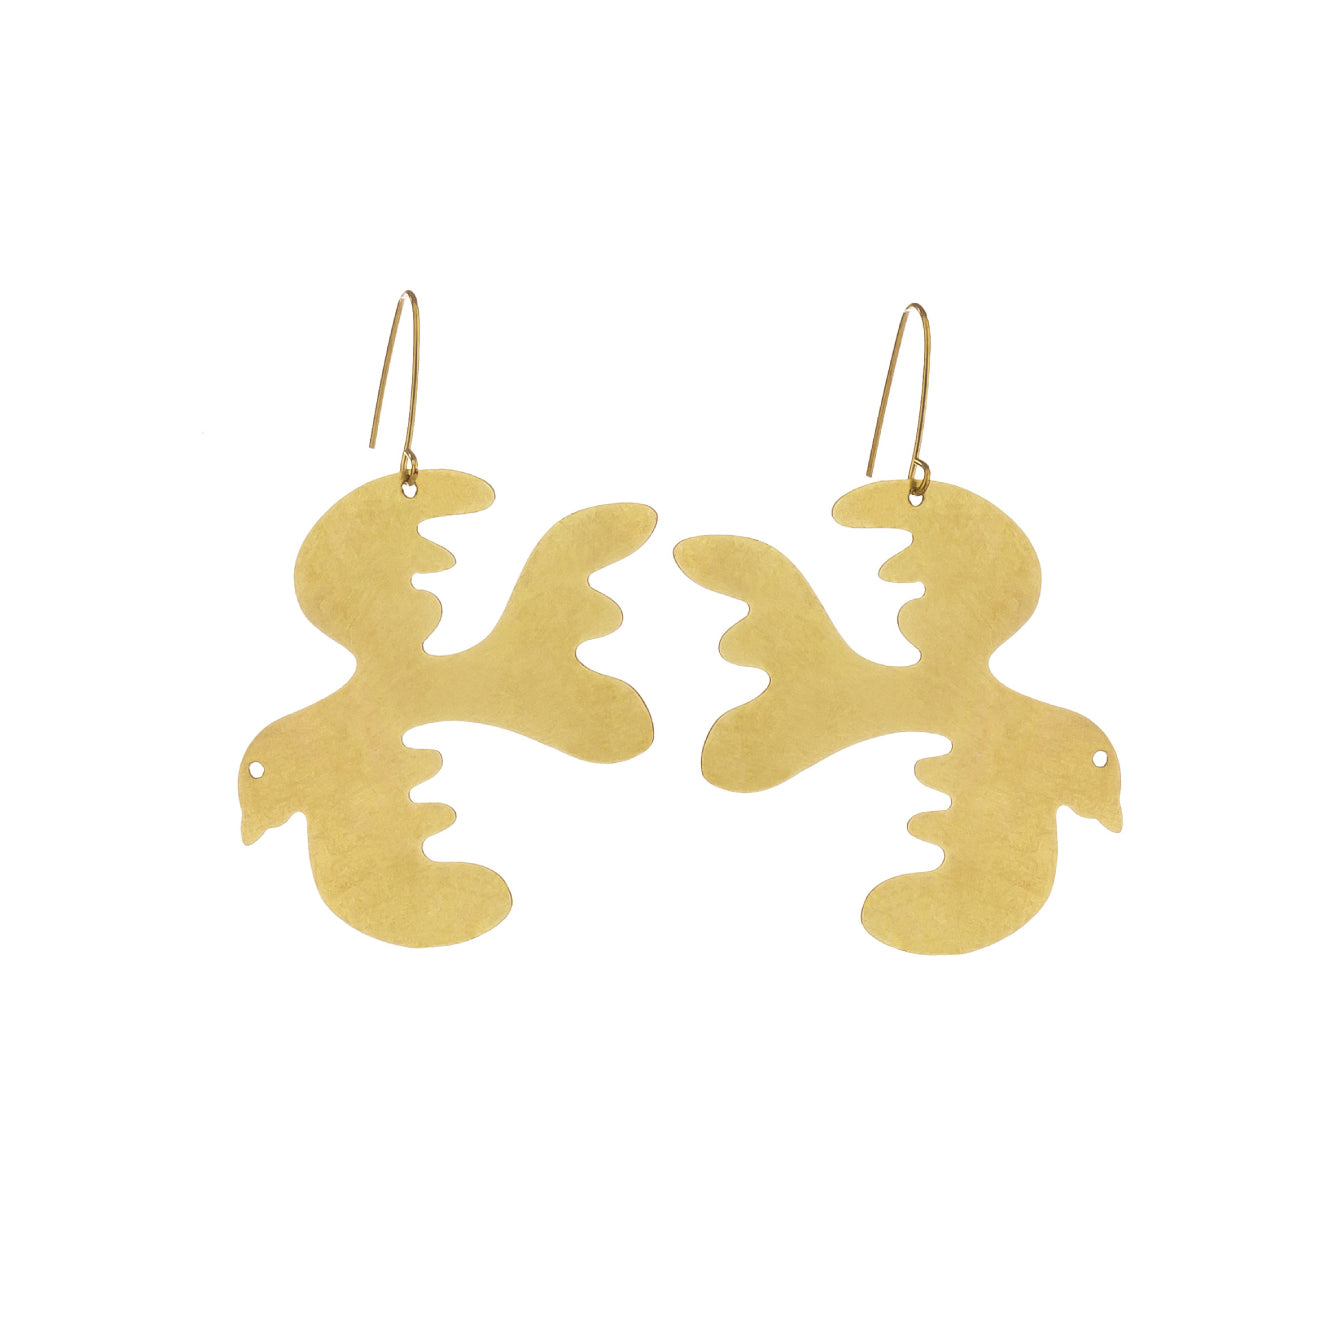 Brass Free as a Bird Earrings Large